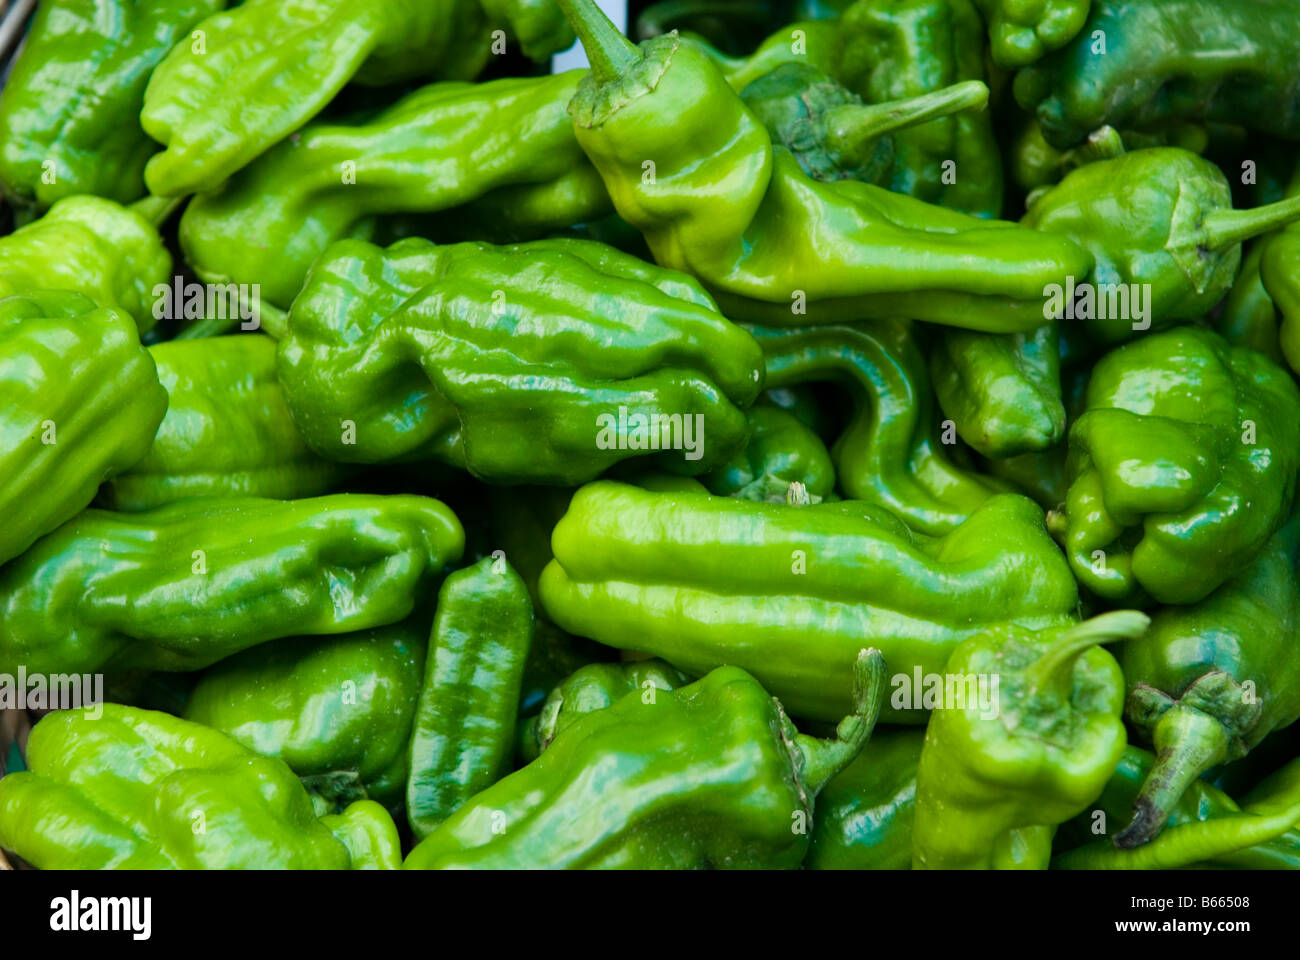 Organic Green peppers In outdoors market Lebanon Middle East - Stock Image